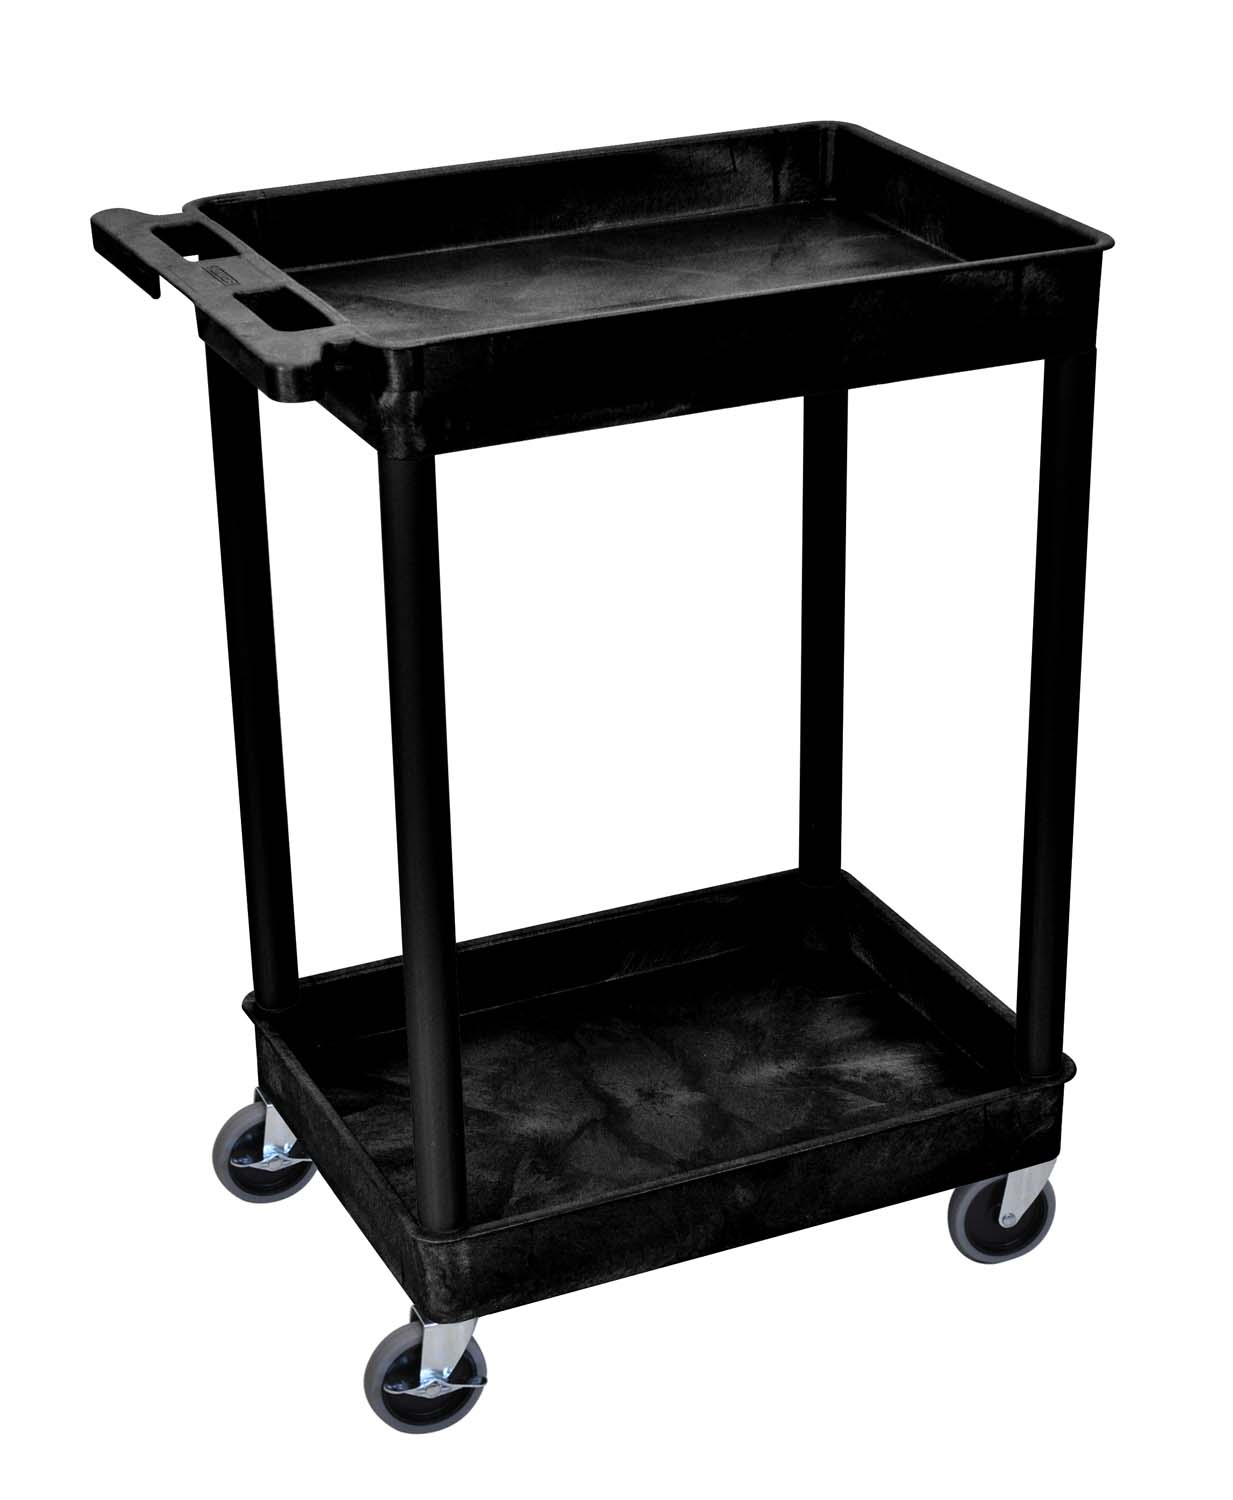 Luxor 2 Shelf Tub Utility Cart BLACK, 3 Pack